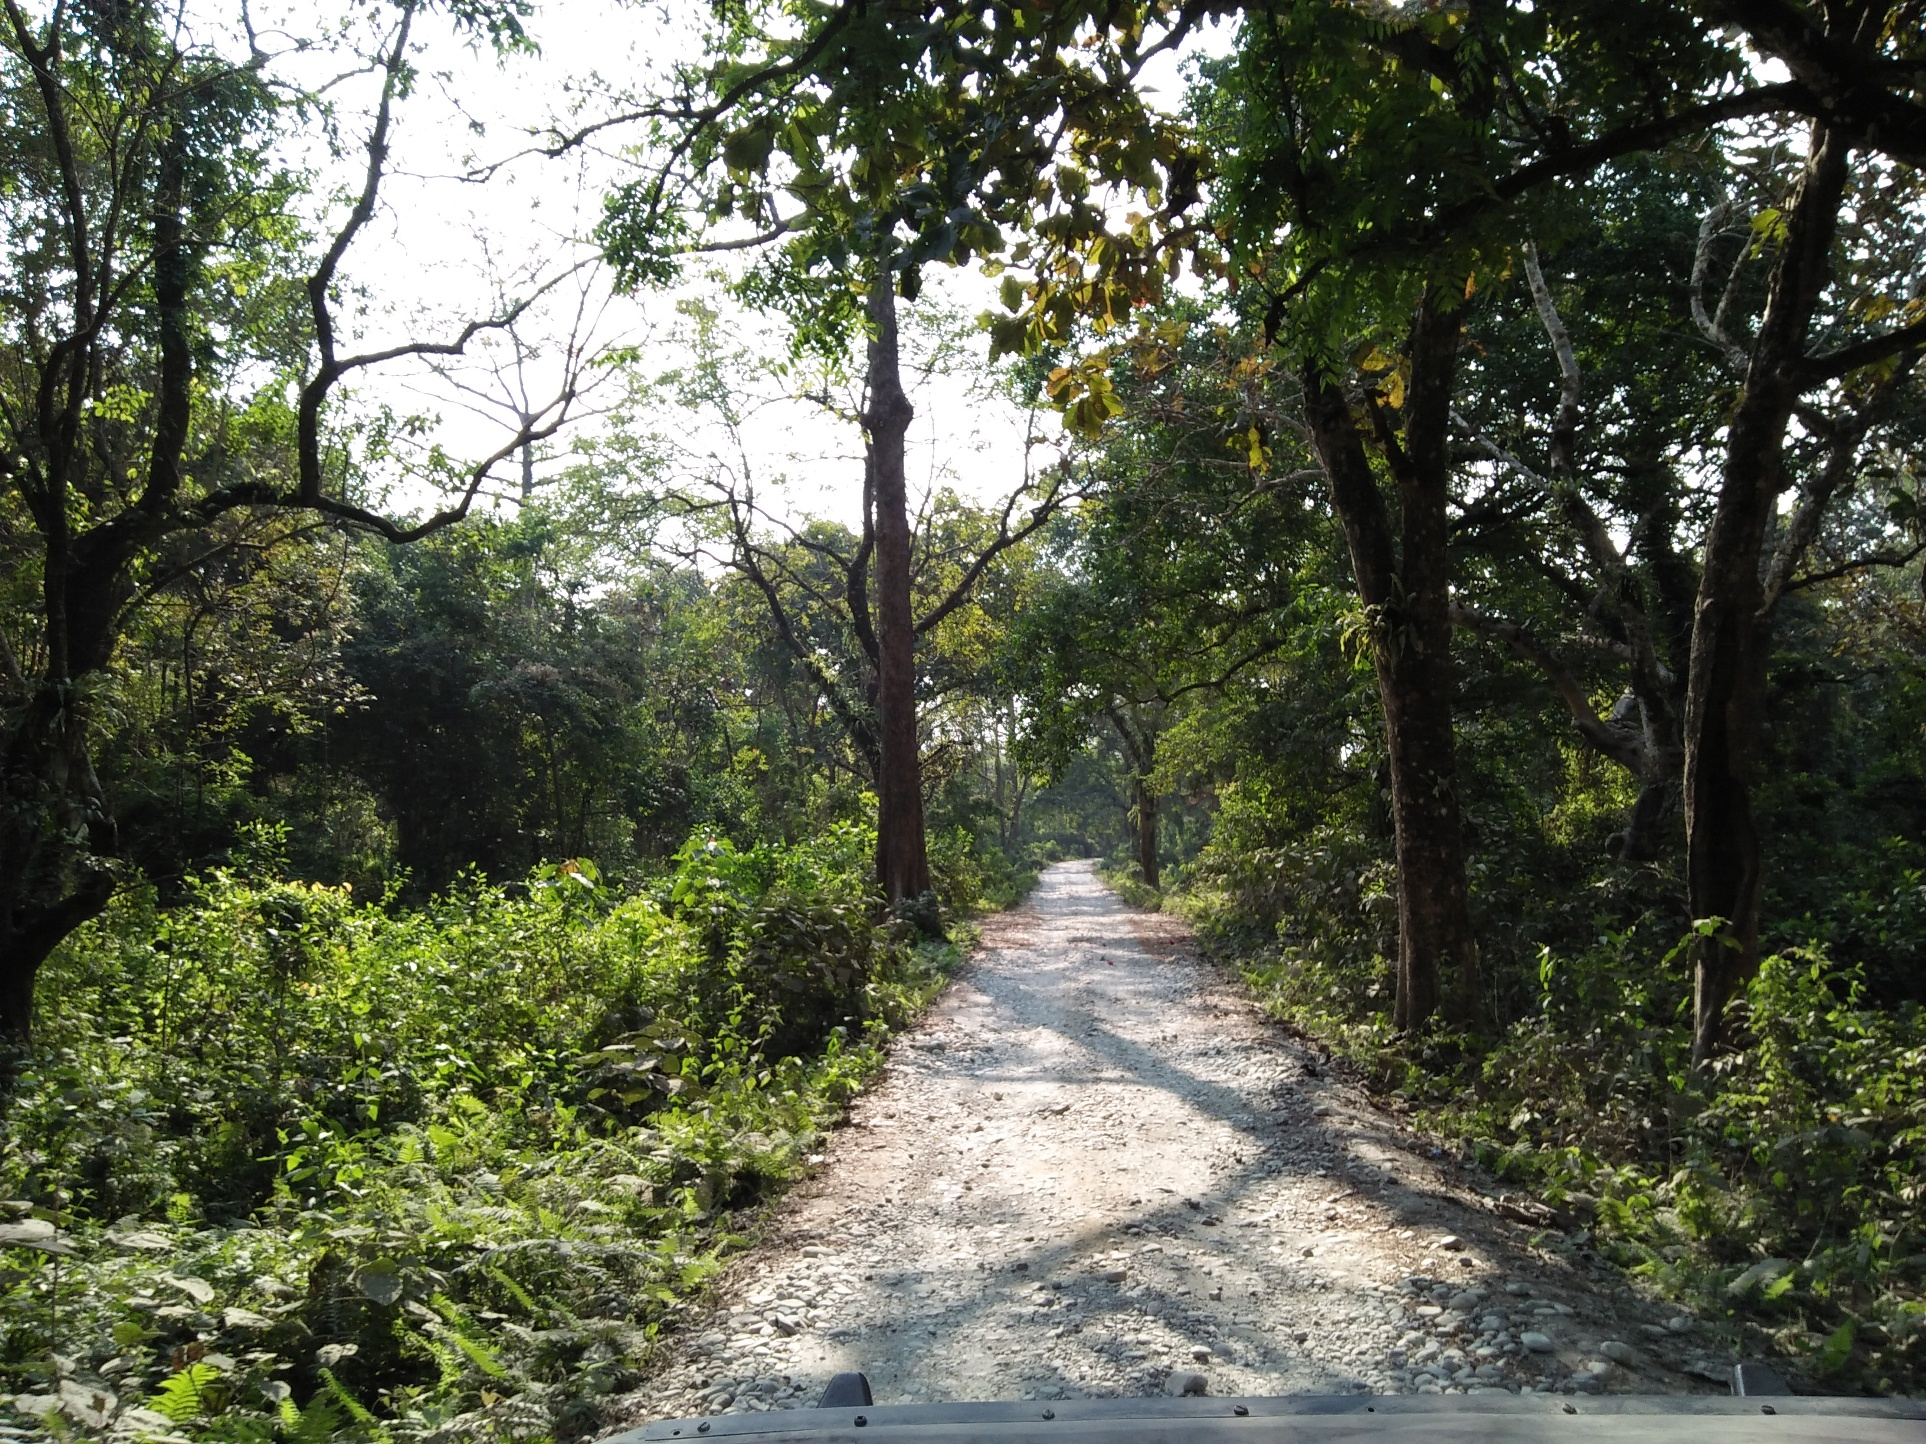 MOVE INTO THE WILDERNESS TO ENJOY THE ACTUAL BEAUTY OF NATURE .. INDEED THE ROAD IS THE LESS TRAVELED ONE BUT IT LEADS TO BLISSFUL DESTINATIONS. Loc- Manas National Park